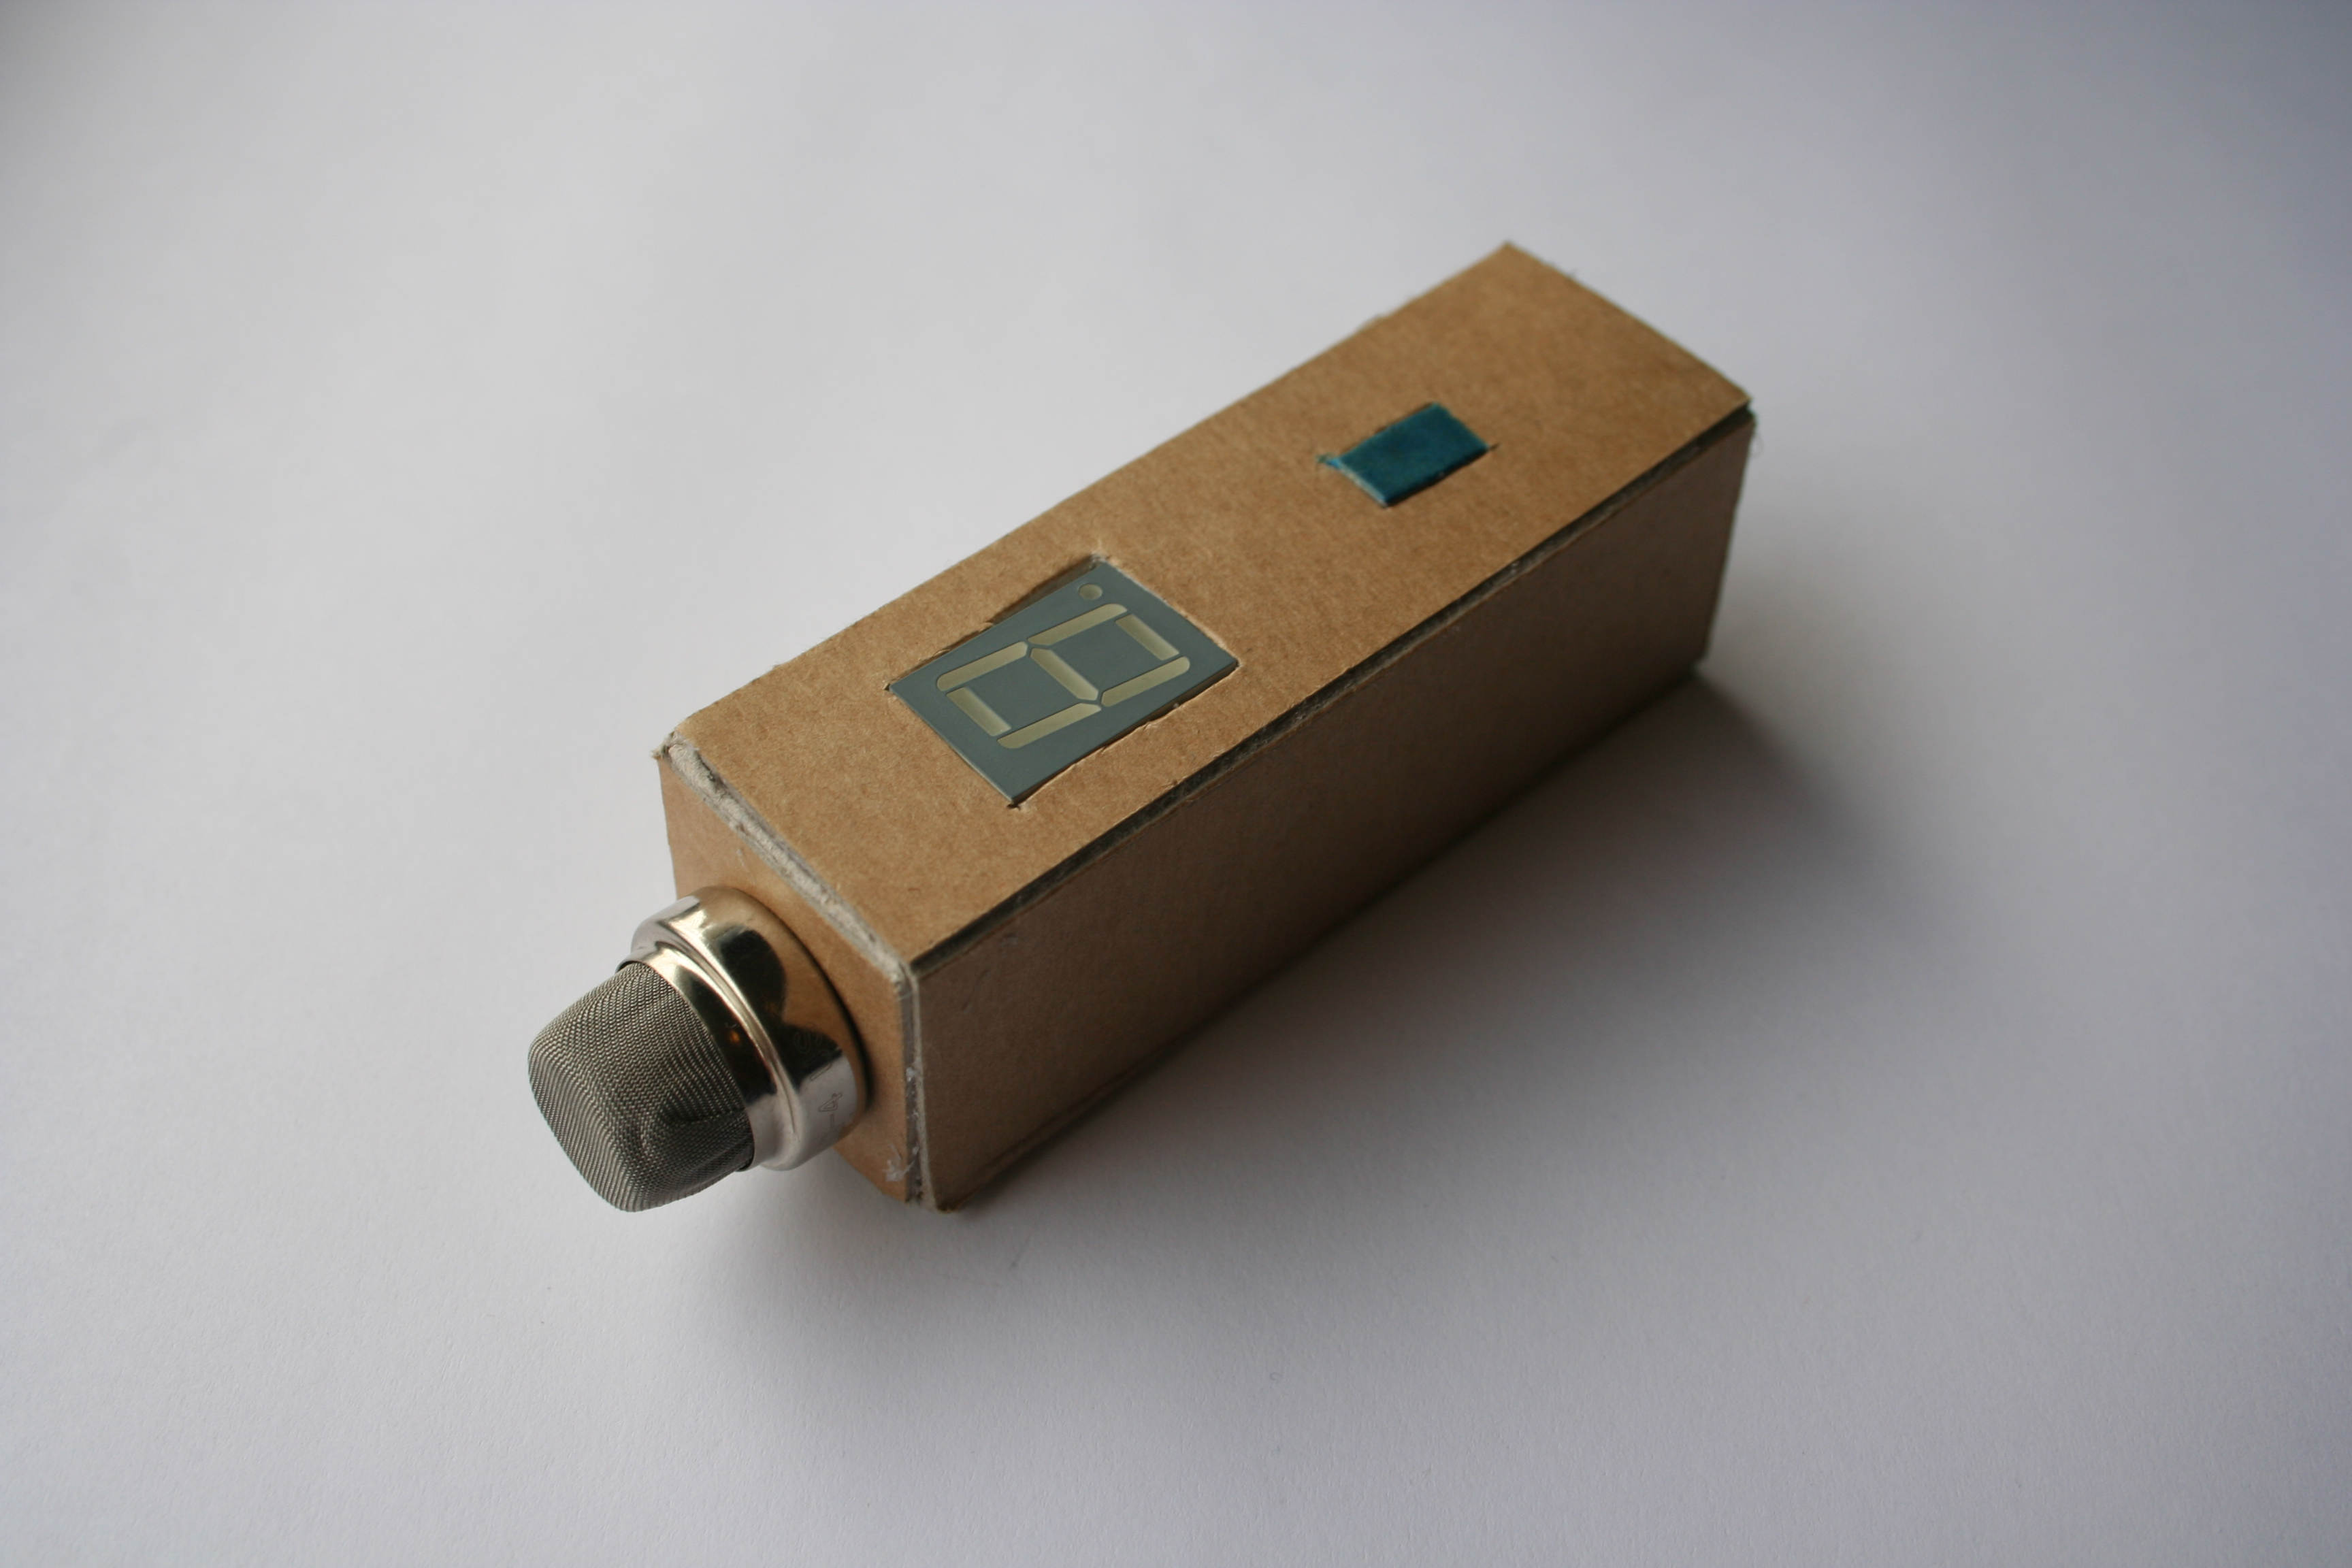 Gas detector / indicator (USB powered) with arduino